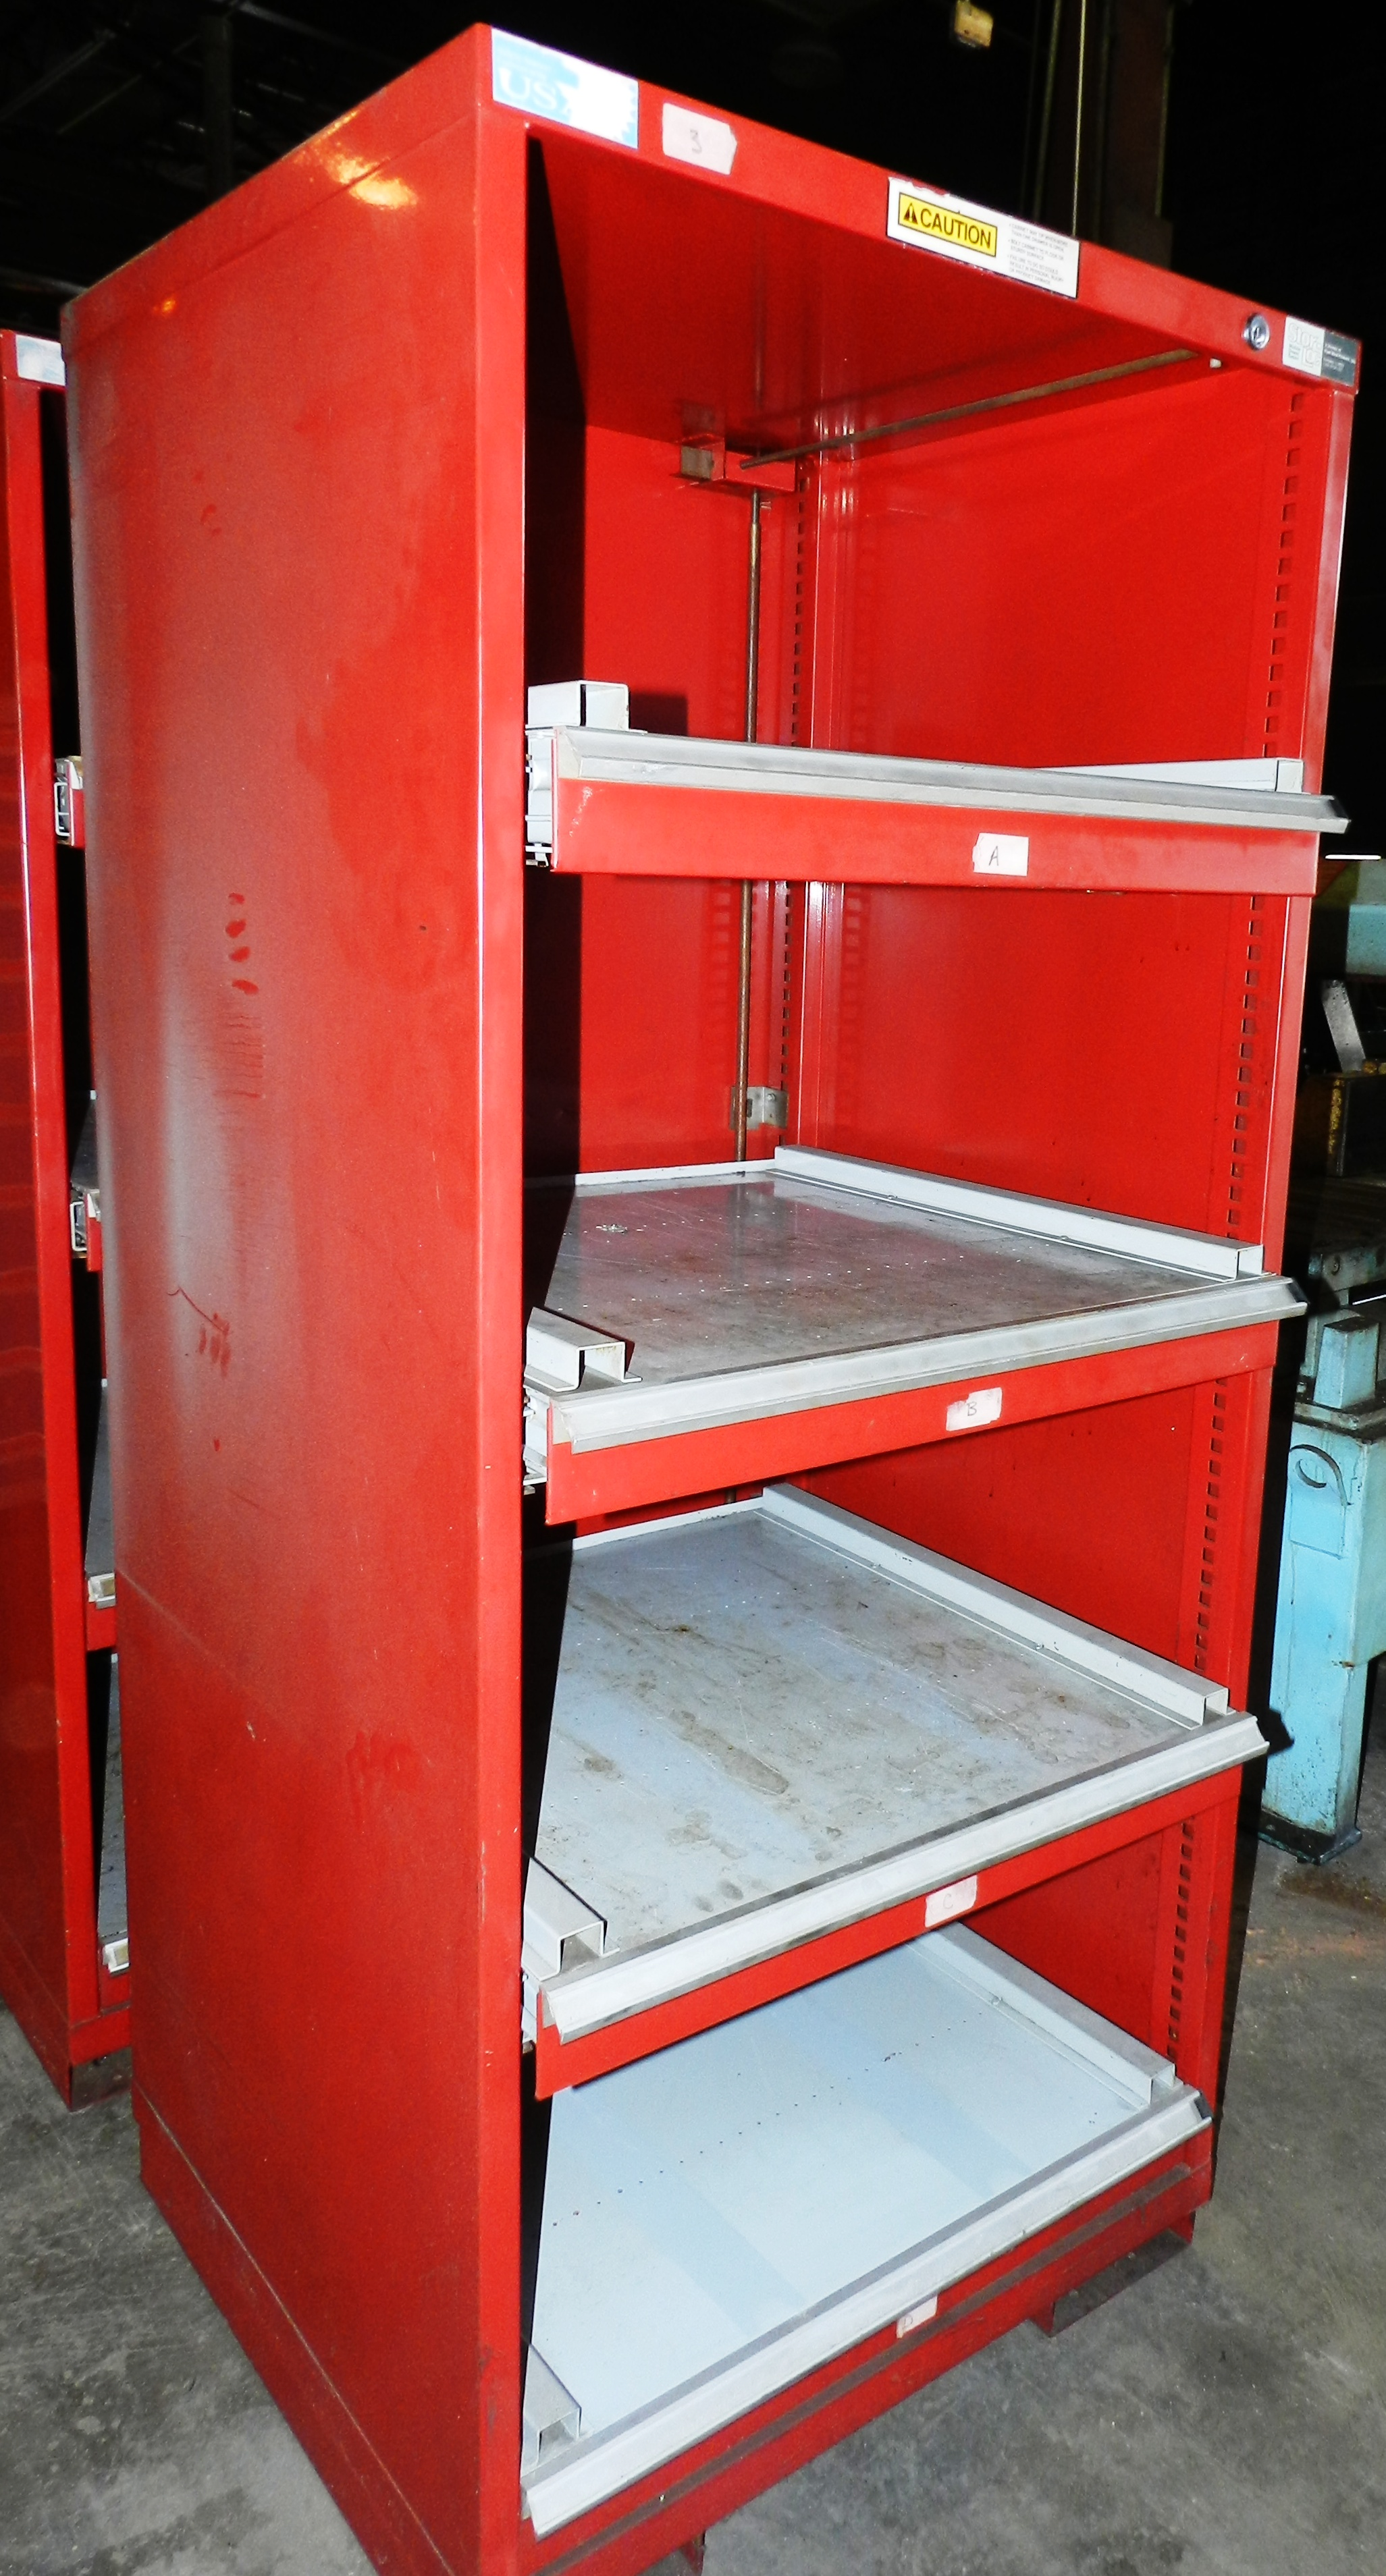 "Lot 73 - Stor-Loc Modular Drawer System 29"" x 28"" x 65.5"" Tool Cabinet"